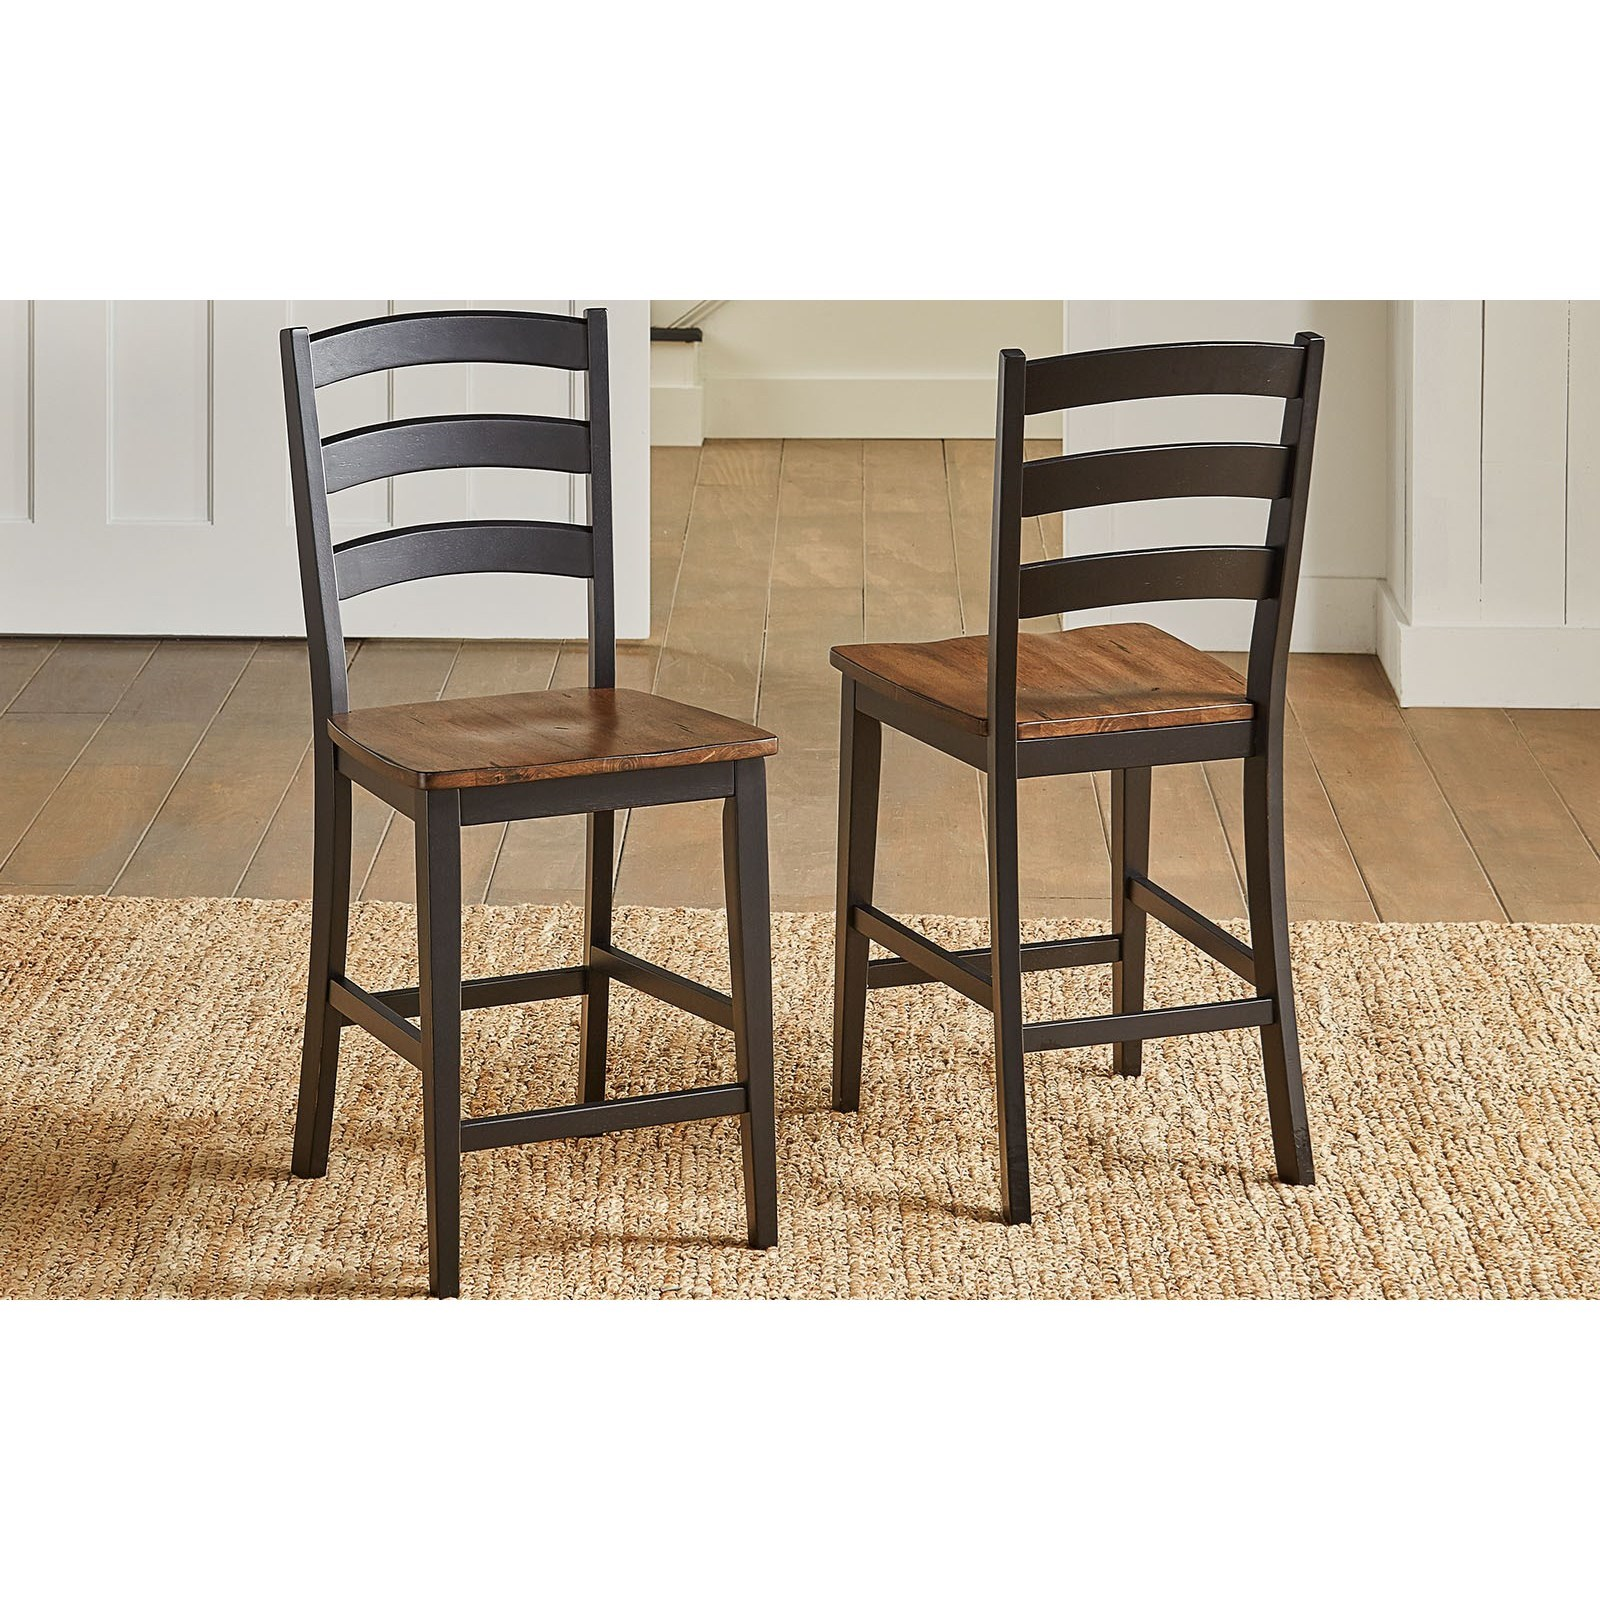 Stormy Ridge Bar Stool  by A-A at Walker's Furniture